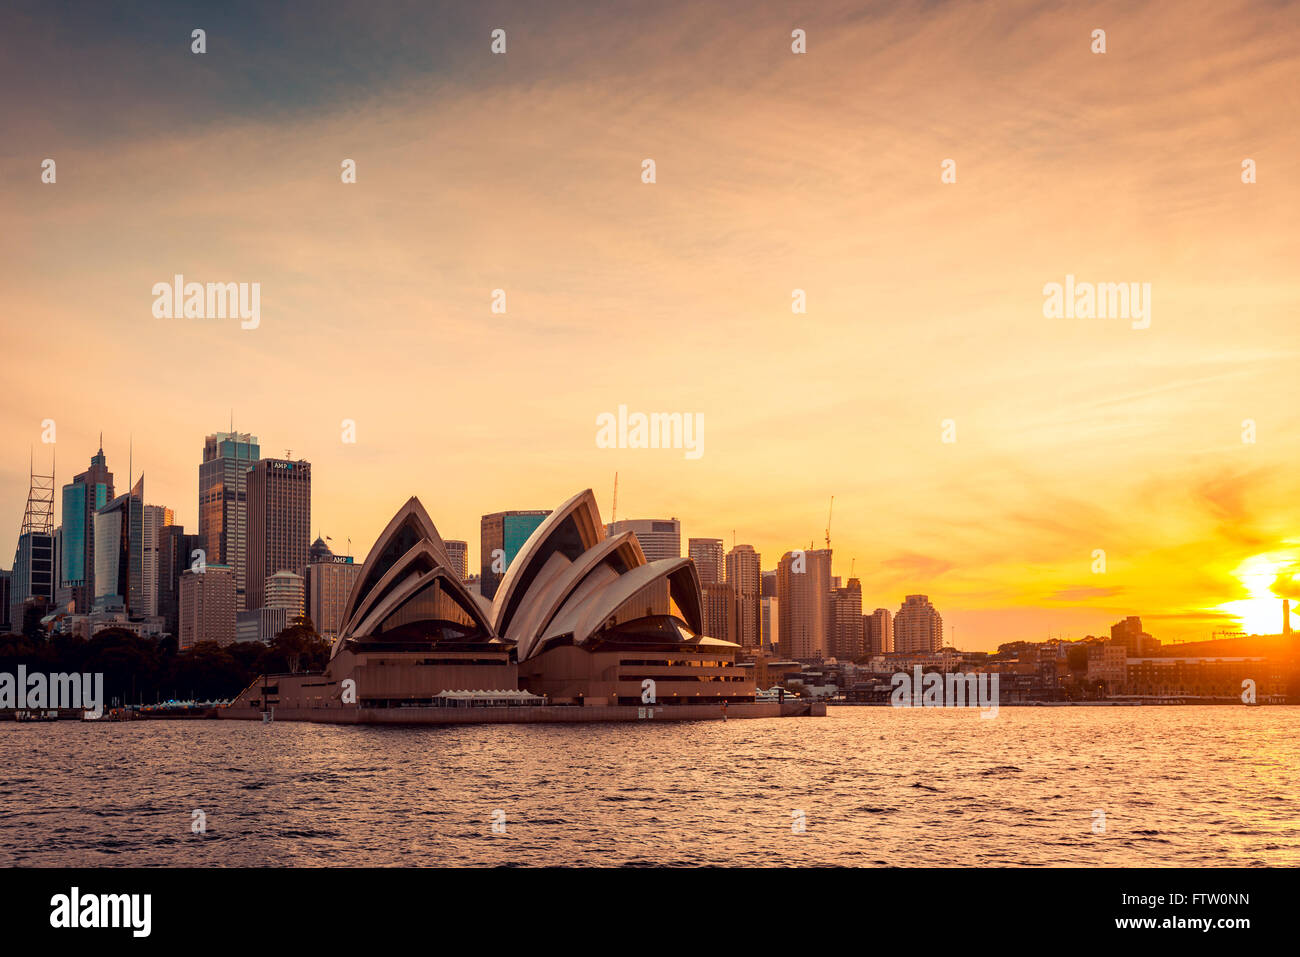 Sydney, Australia - November 11, 2015:  Opera House with Sydney city bihind at sunset. View from the ferry. - Stock Image